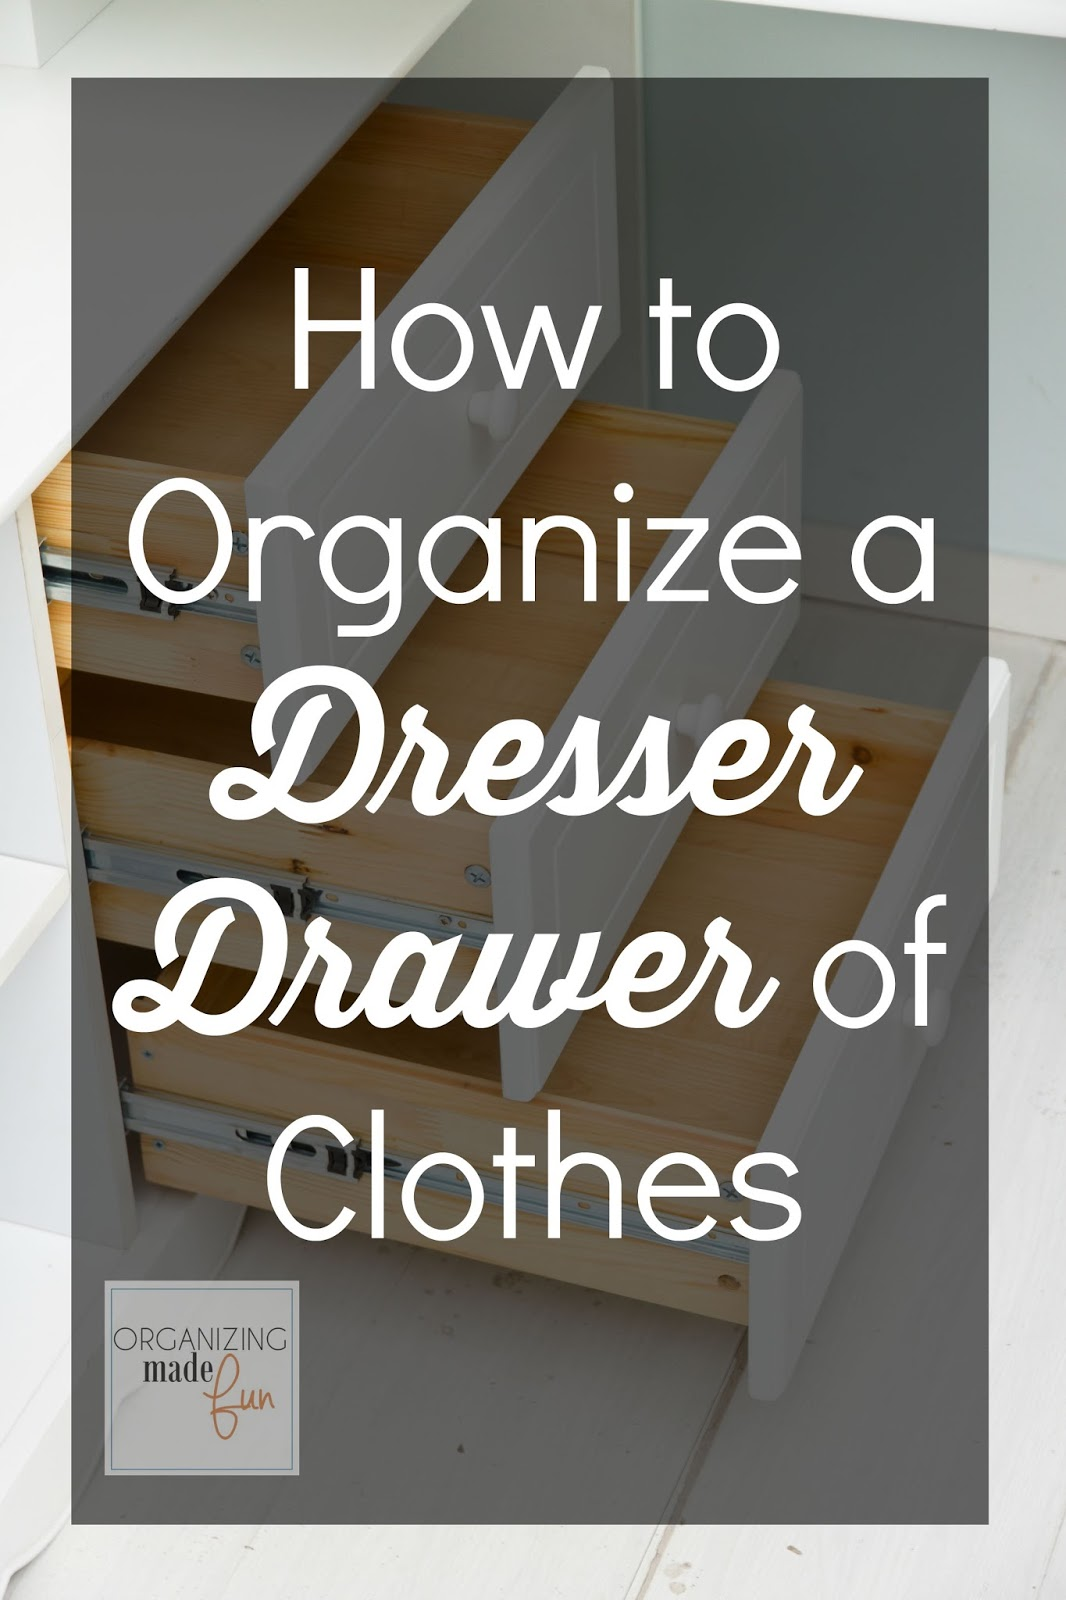 How To Organize A Dresser Drawer Of Clothes Organizing